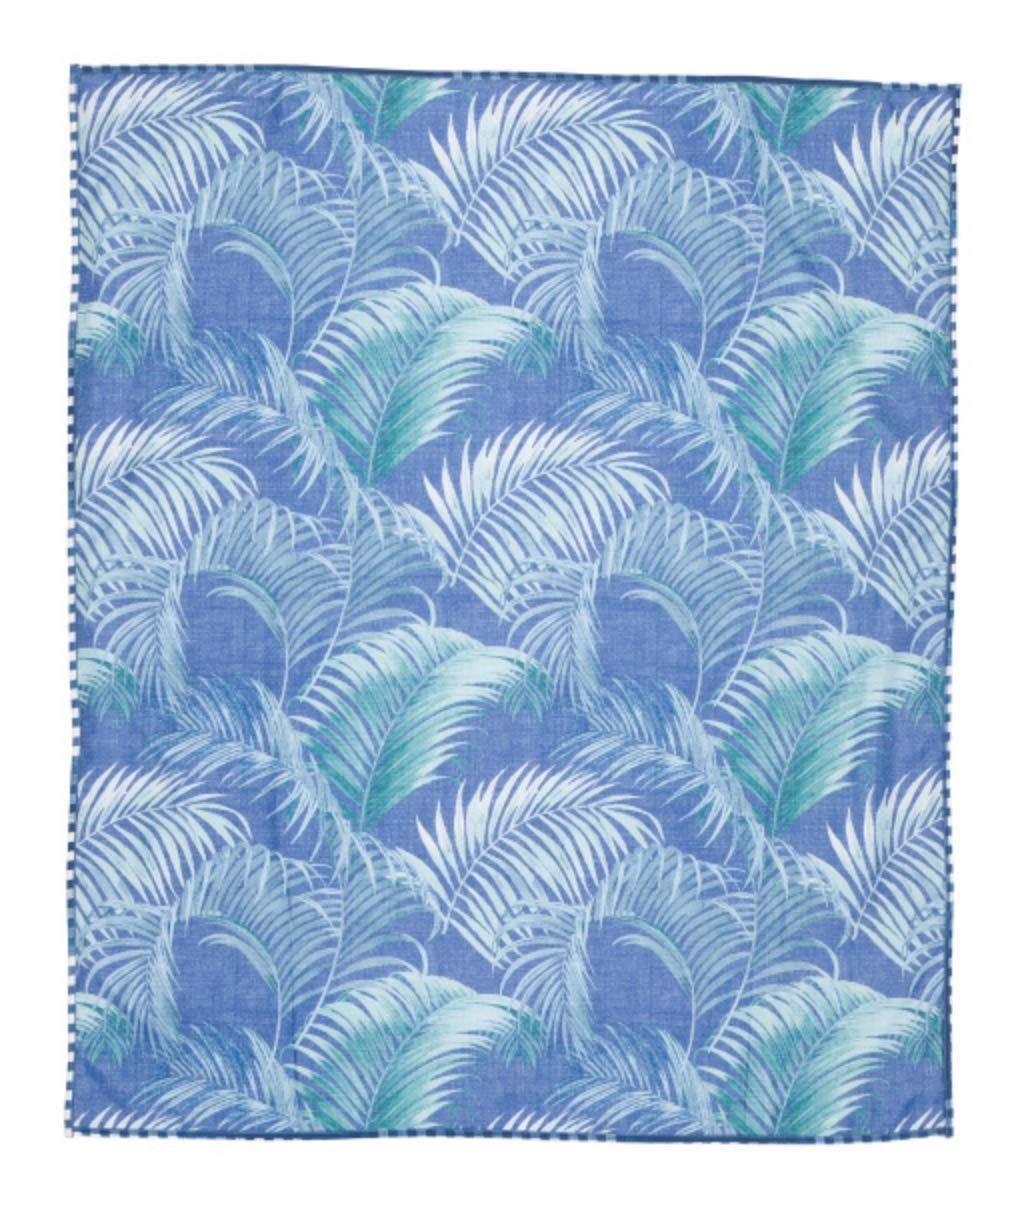 Tommy Bahama Oretti Blue Palm Leaves Picnic Beach Blanket Indoor Outdoor by Tommy Bahama